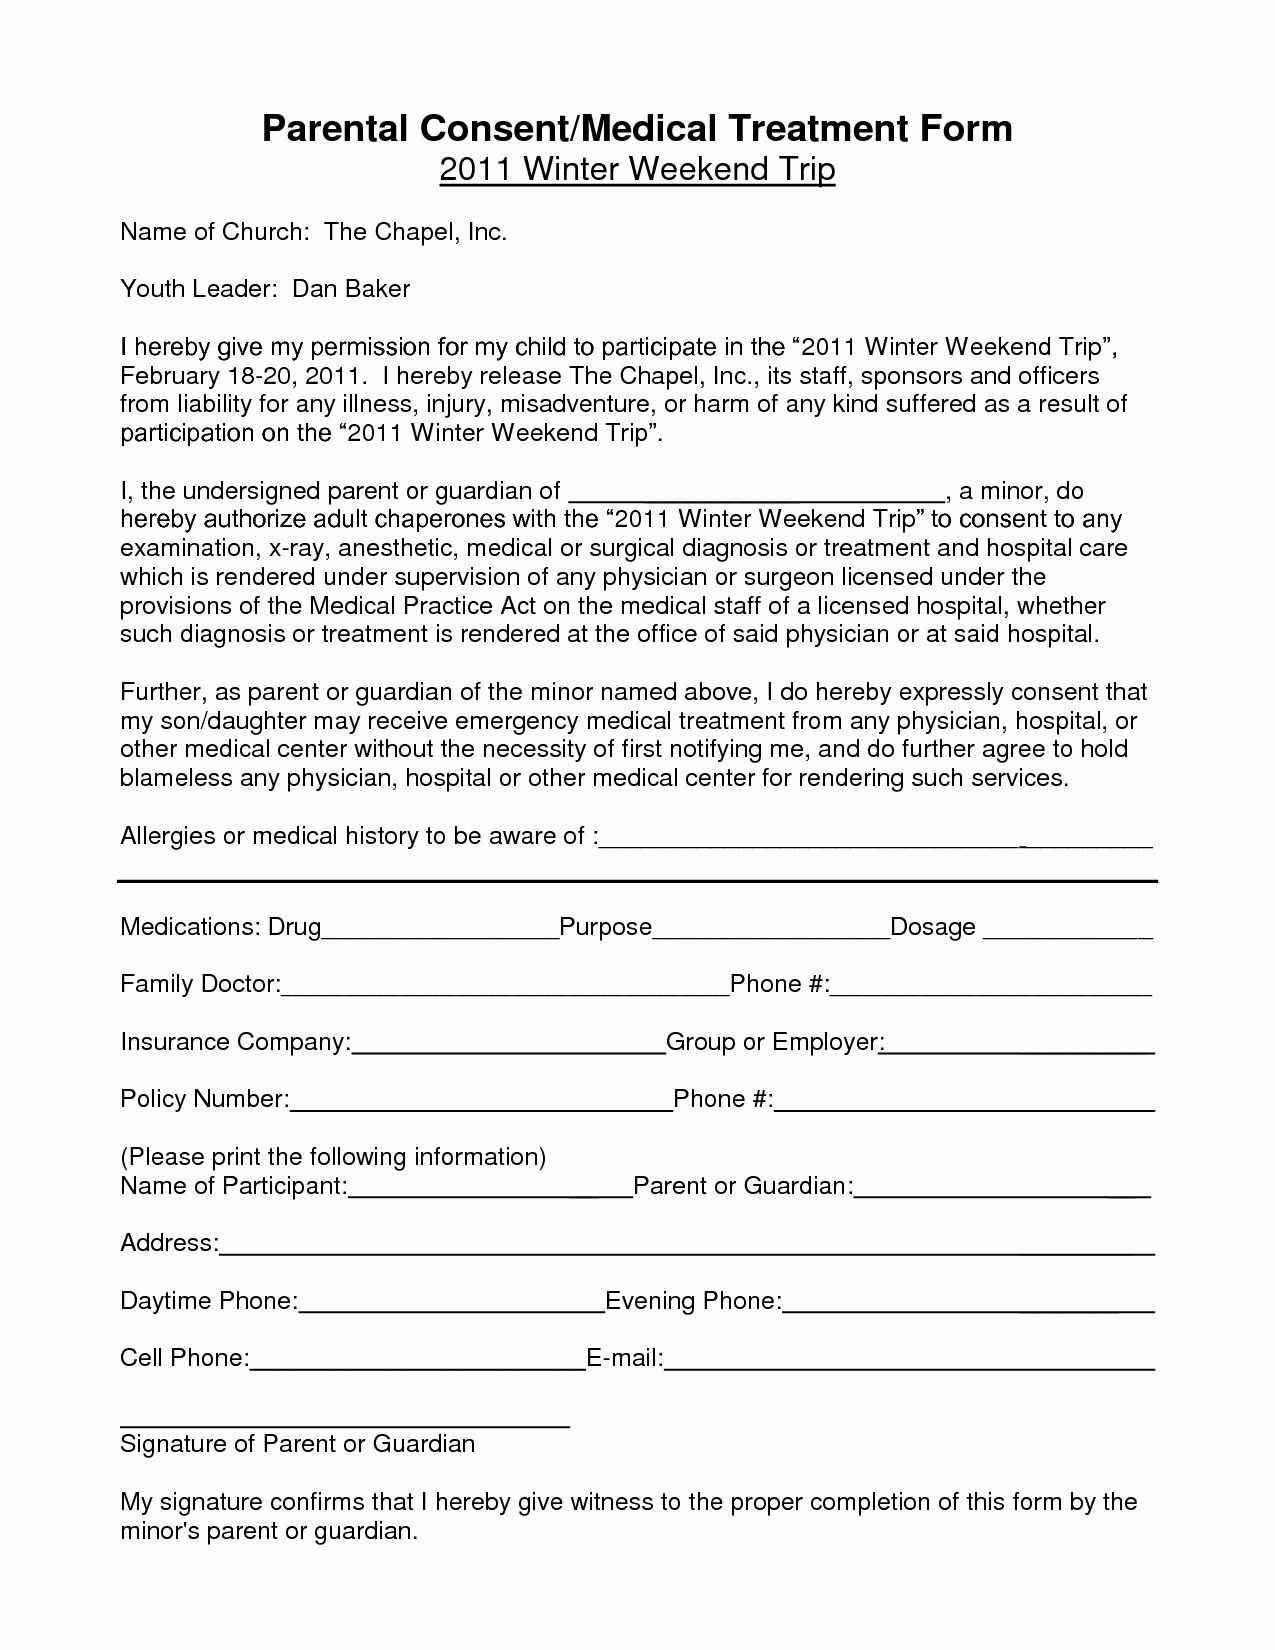 Parental Consent Forms Template Inspirational Notarized Medical Consent Form For Minor Consent Forms Travel Consent Form Parental Consent